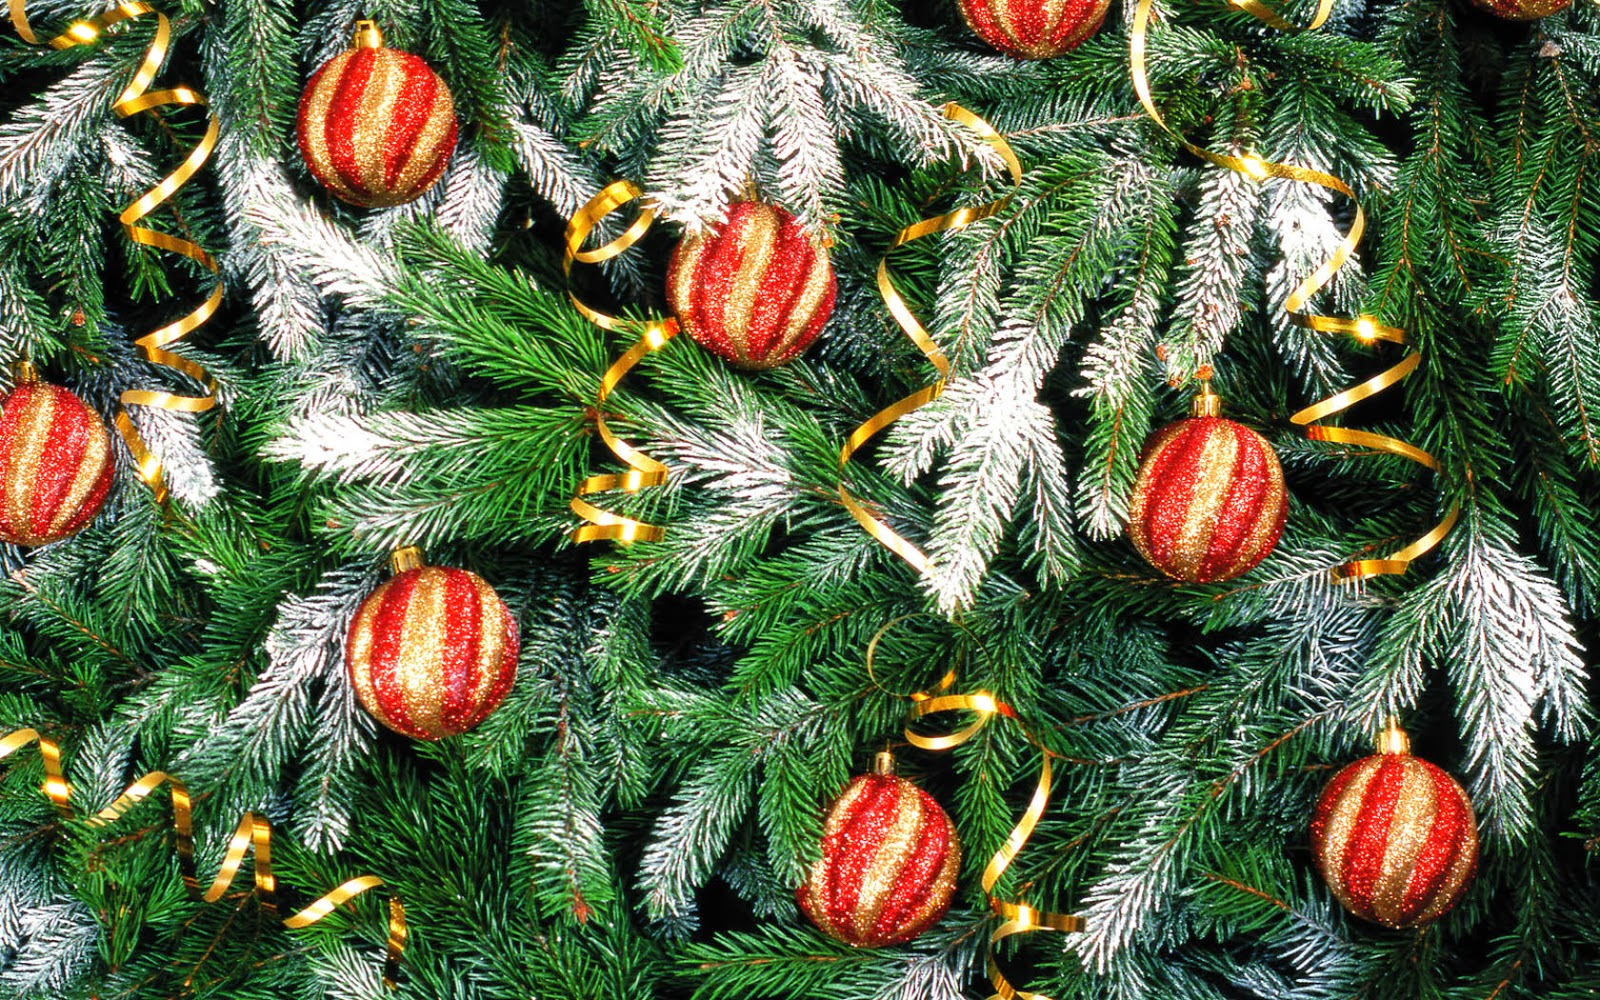 Zilveren Kerstboom Kerst Versiering Wallpapers - Hd Wallpapers